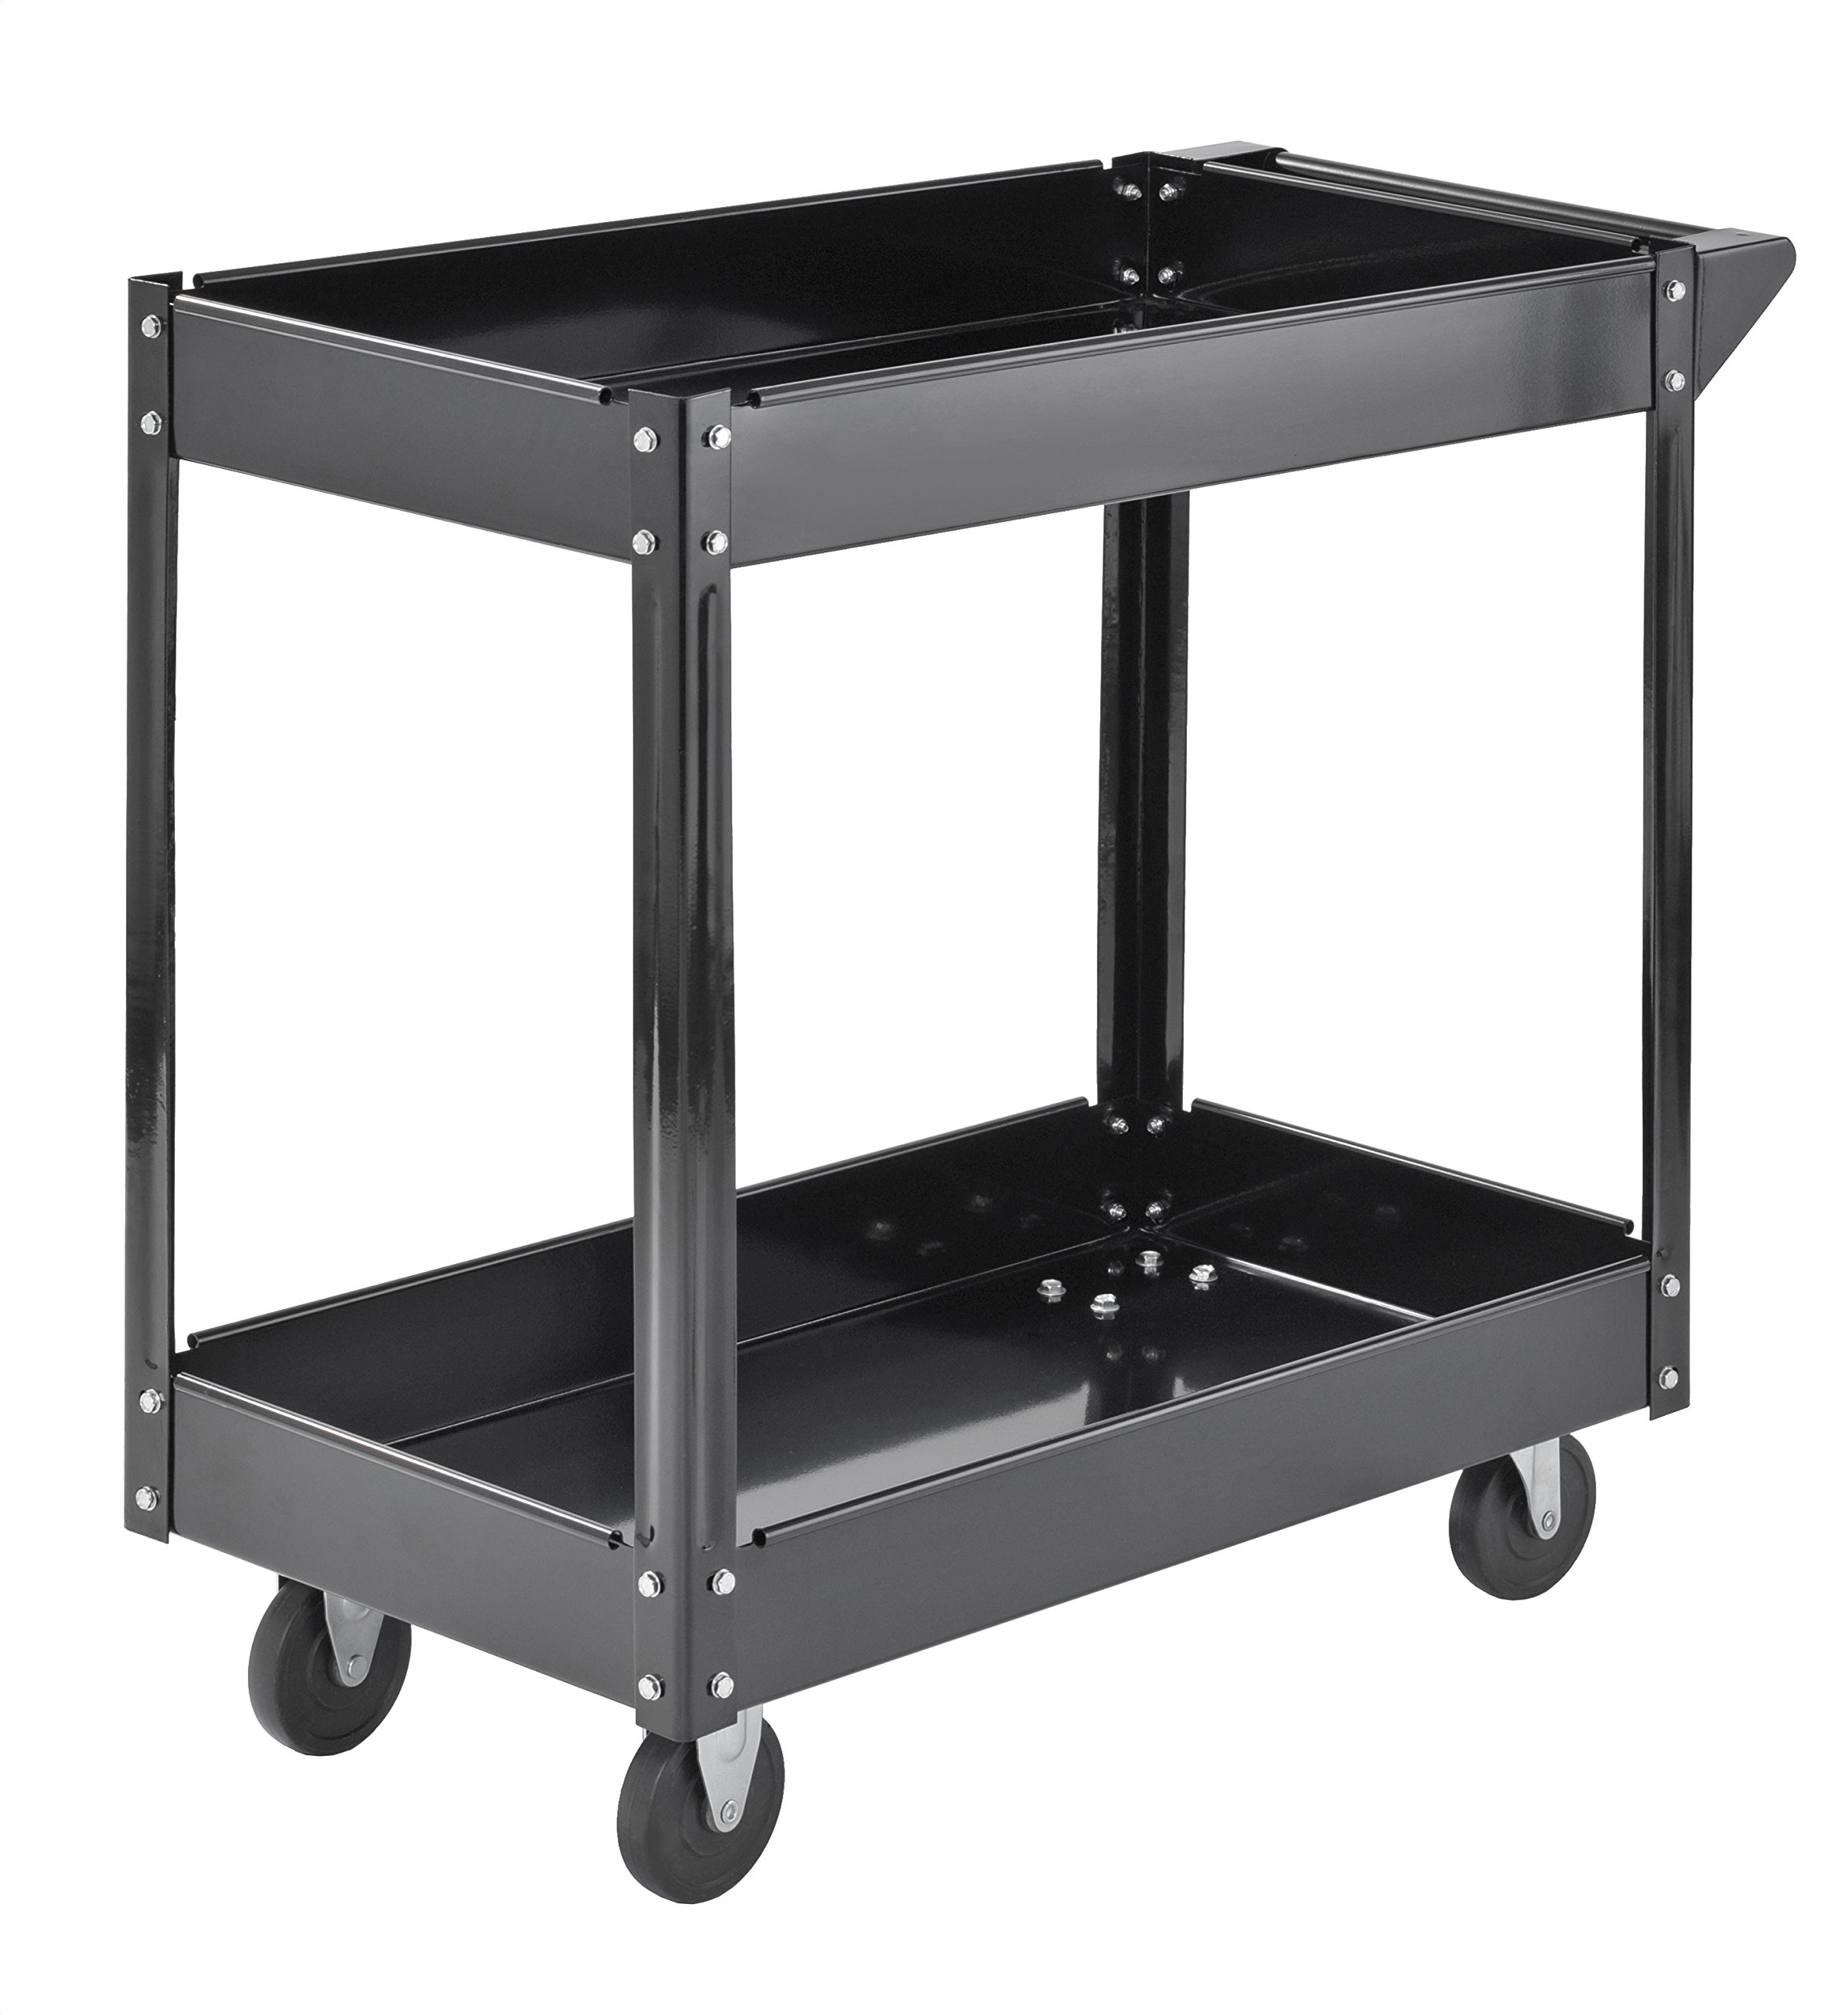 Muscle Rack SC3016 Industrial Black Commercial Service Cart, Steel, 220Lbs Capacity, 33'' Width x 30.5'' Height x 16'' Depth, 2 Shelves, 30.5'' Height, 33'' Width, 16'' Length by Muscle Rack (Image #5)